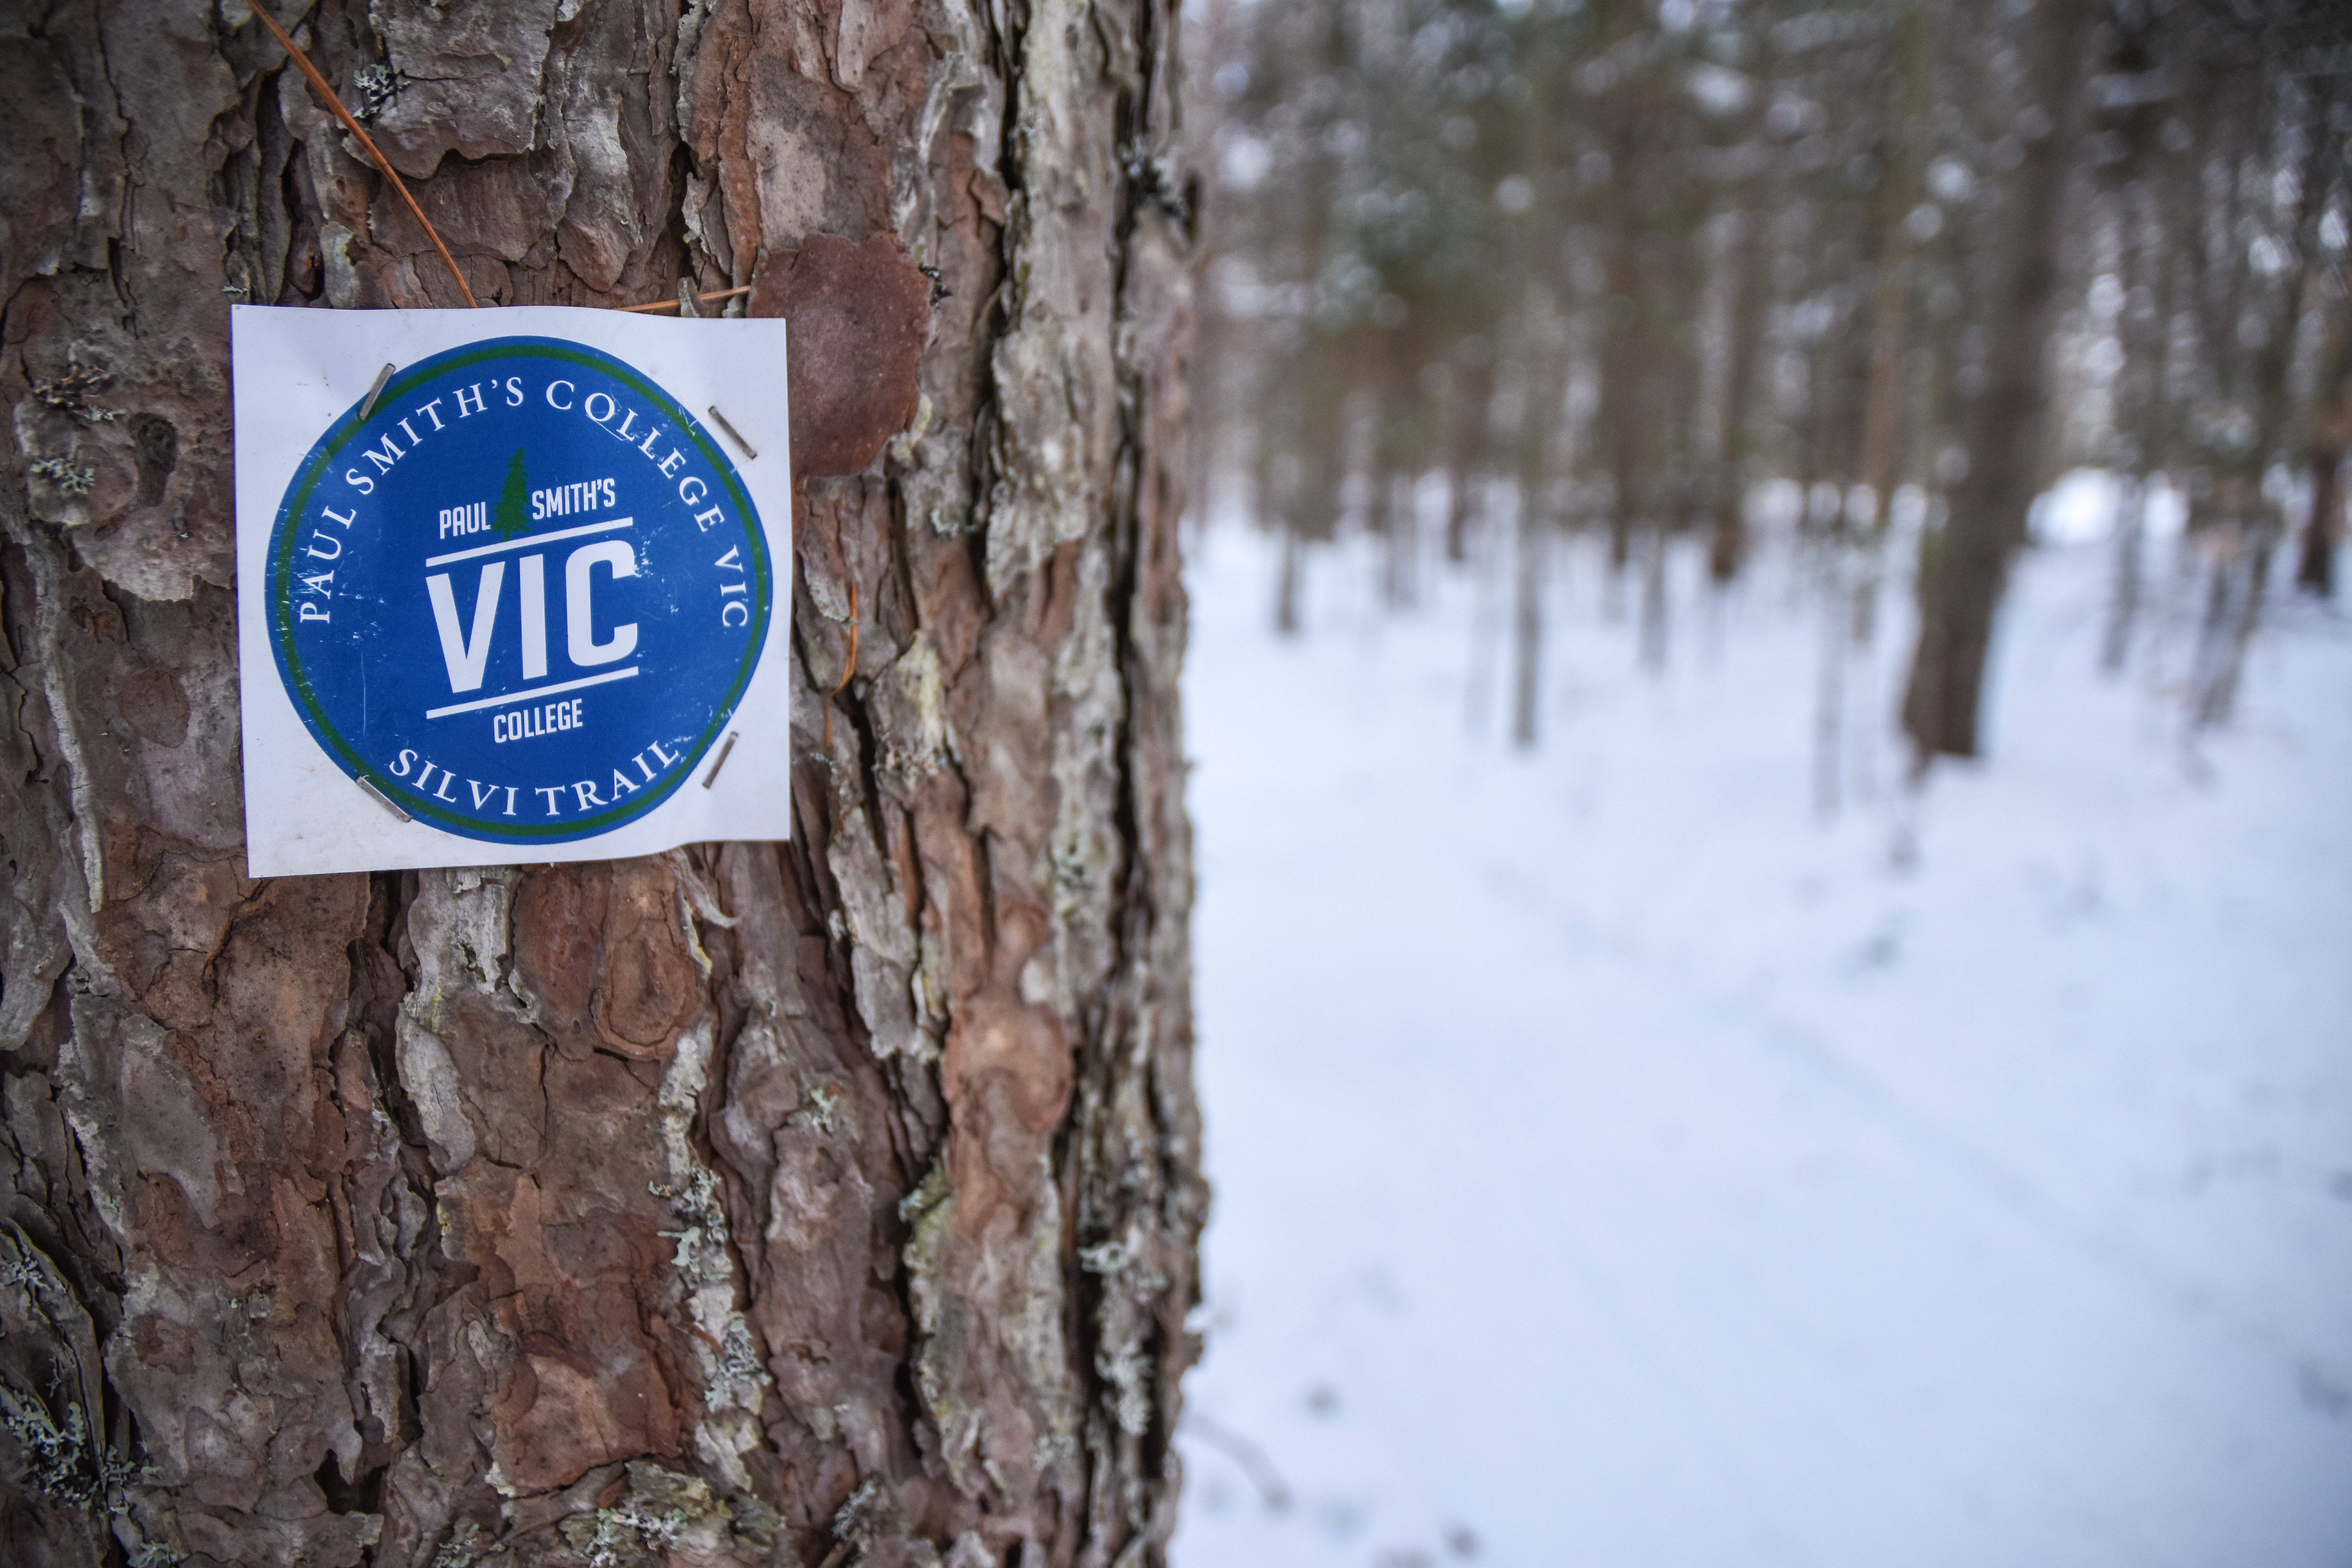 VIC trail marker in winter